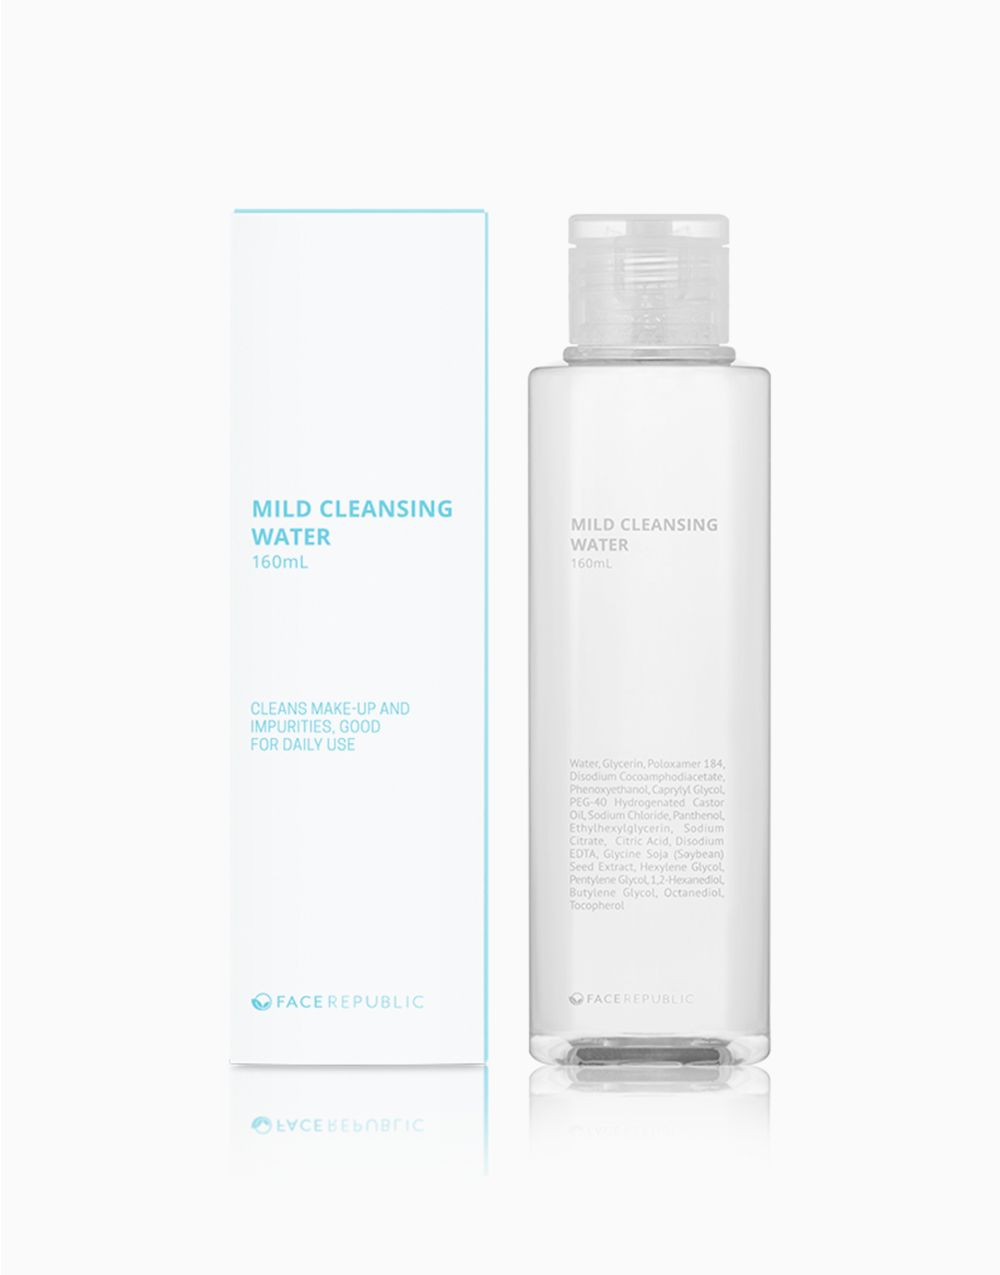 Mild Cleansing Water 160mL by Face Republic